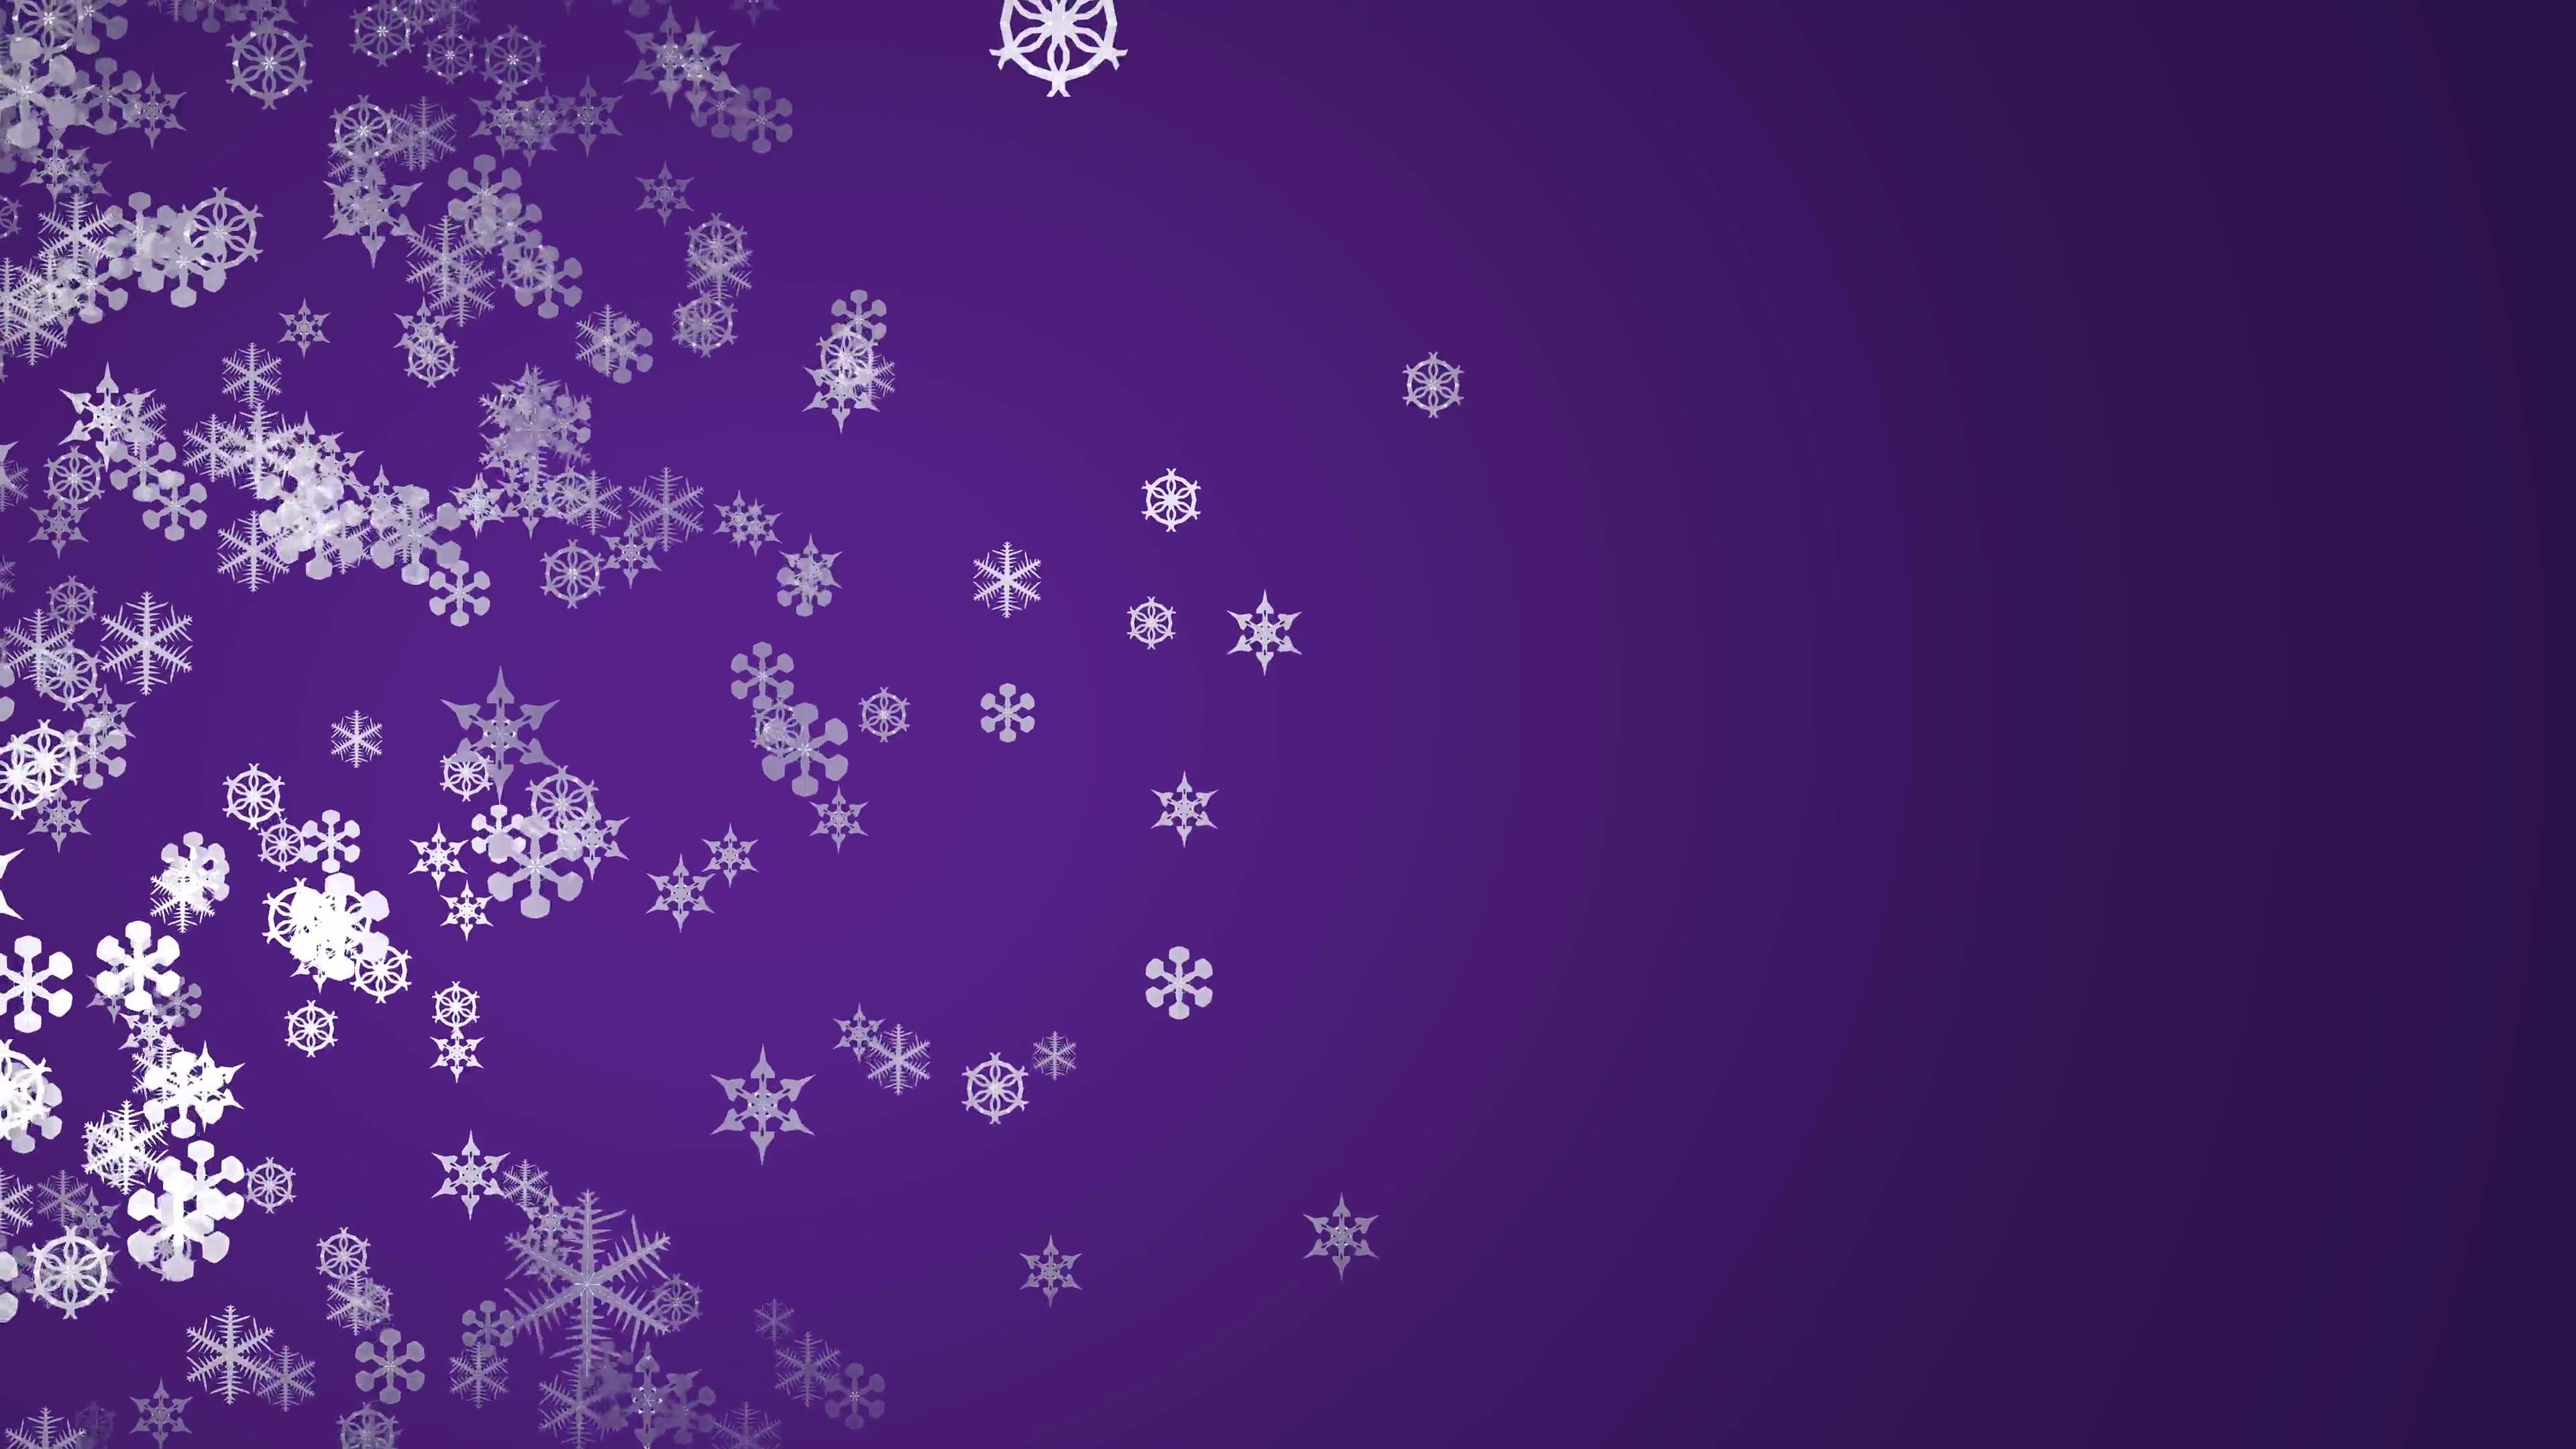 Animated Snow Falling Wallpaper Free Download Snow Falling Background 49 Images